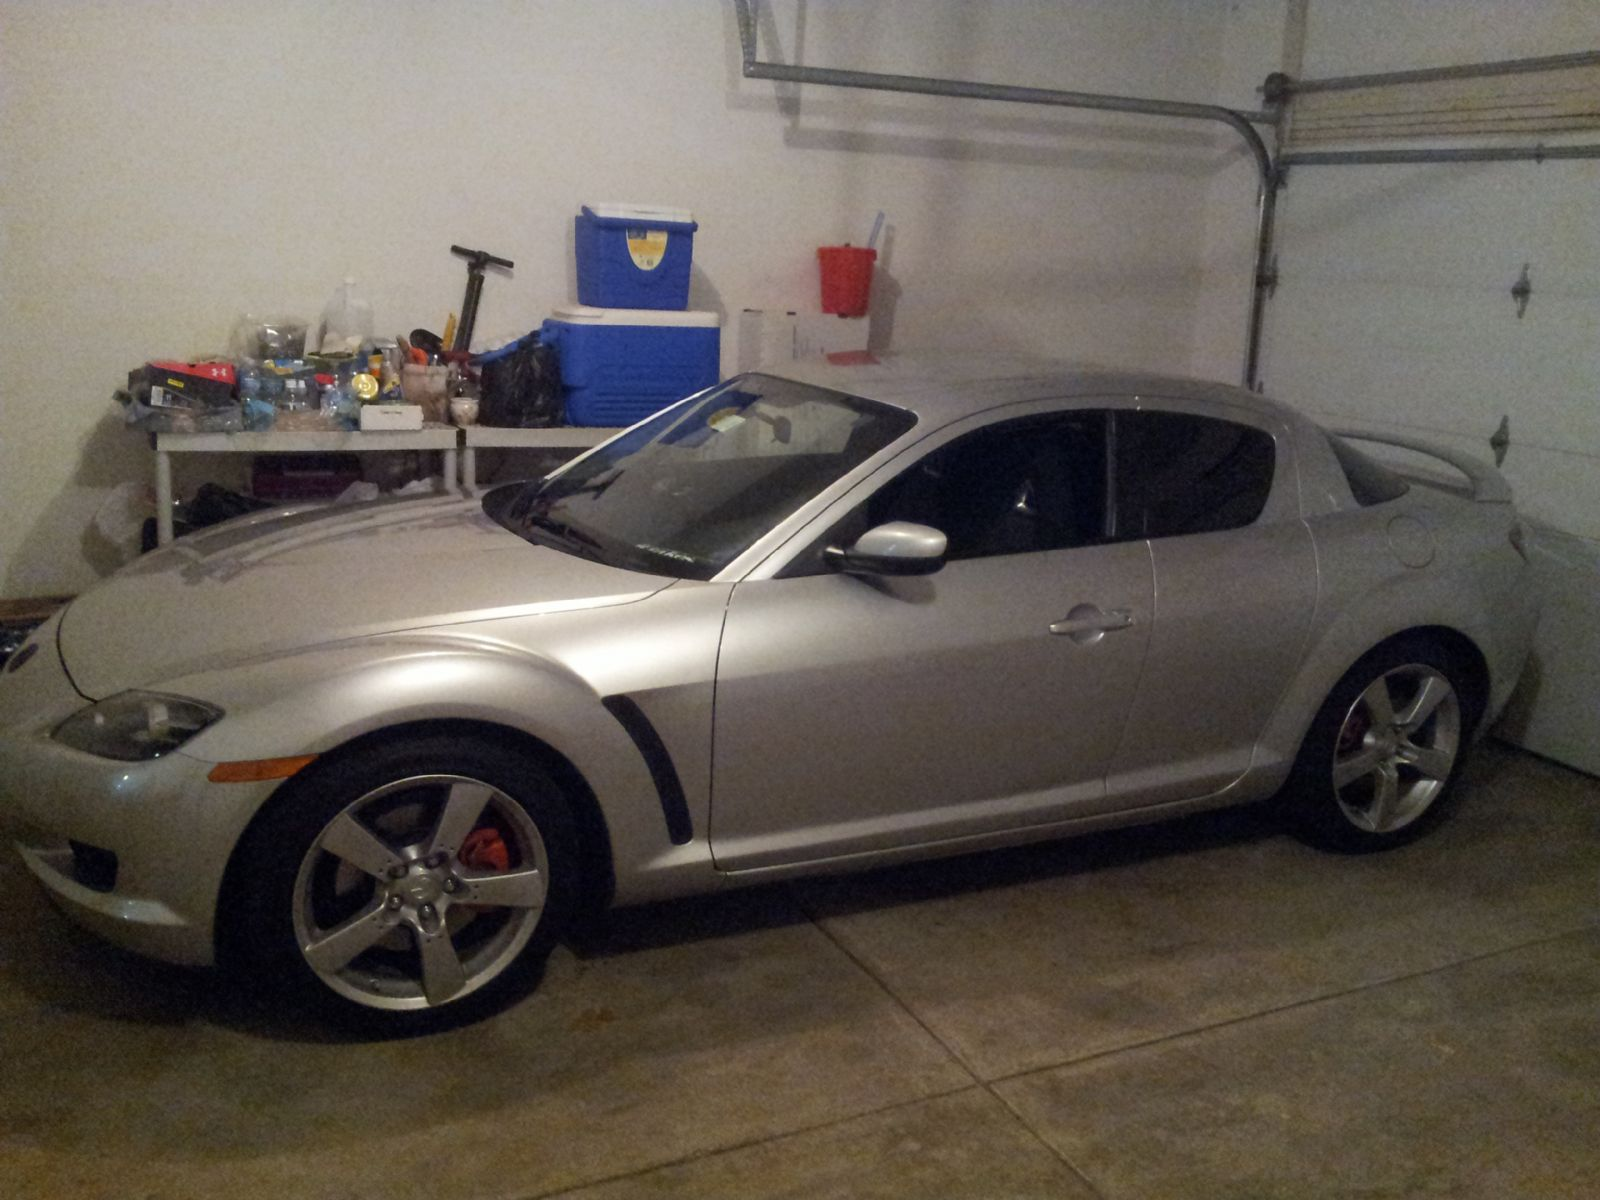 sale cars accesskeyid disposition mazda for alloworigin miles